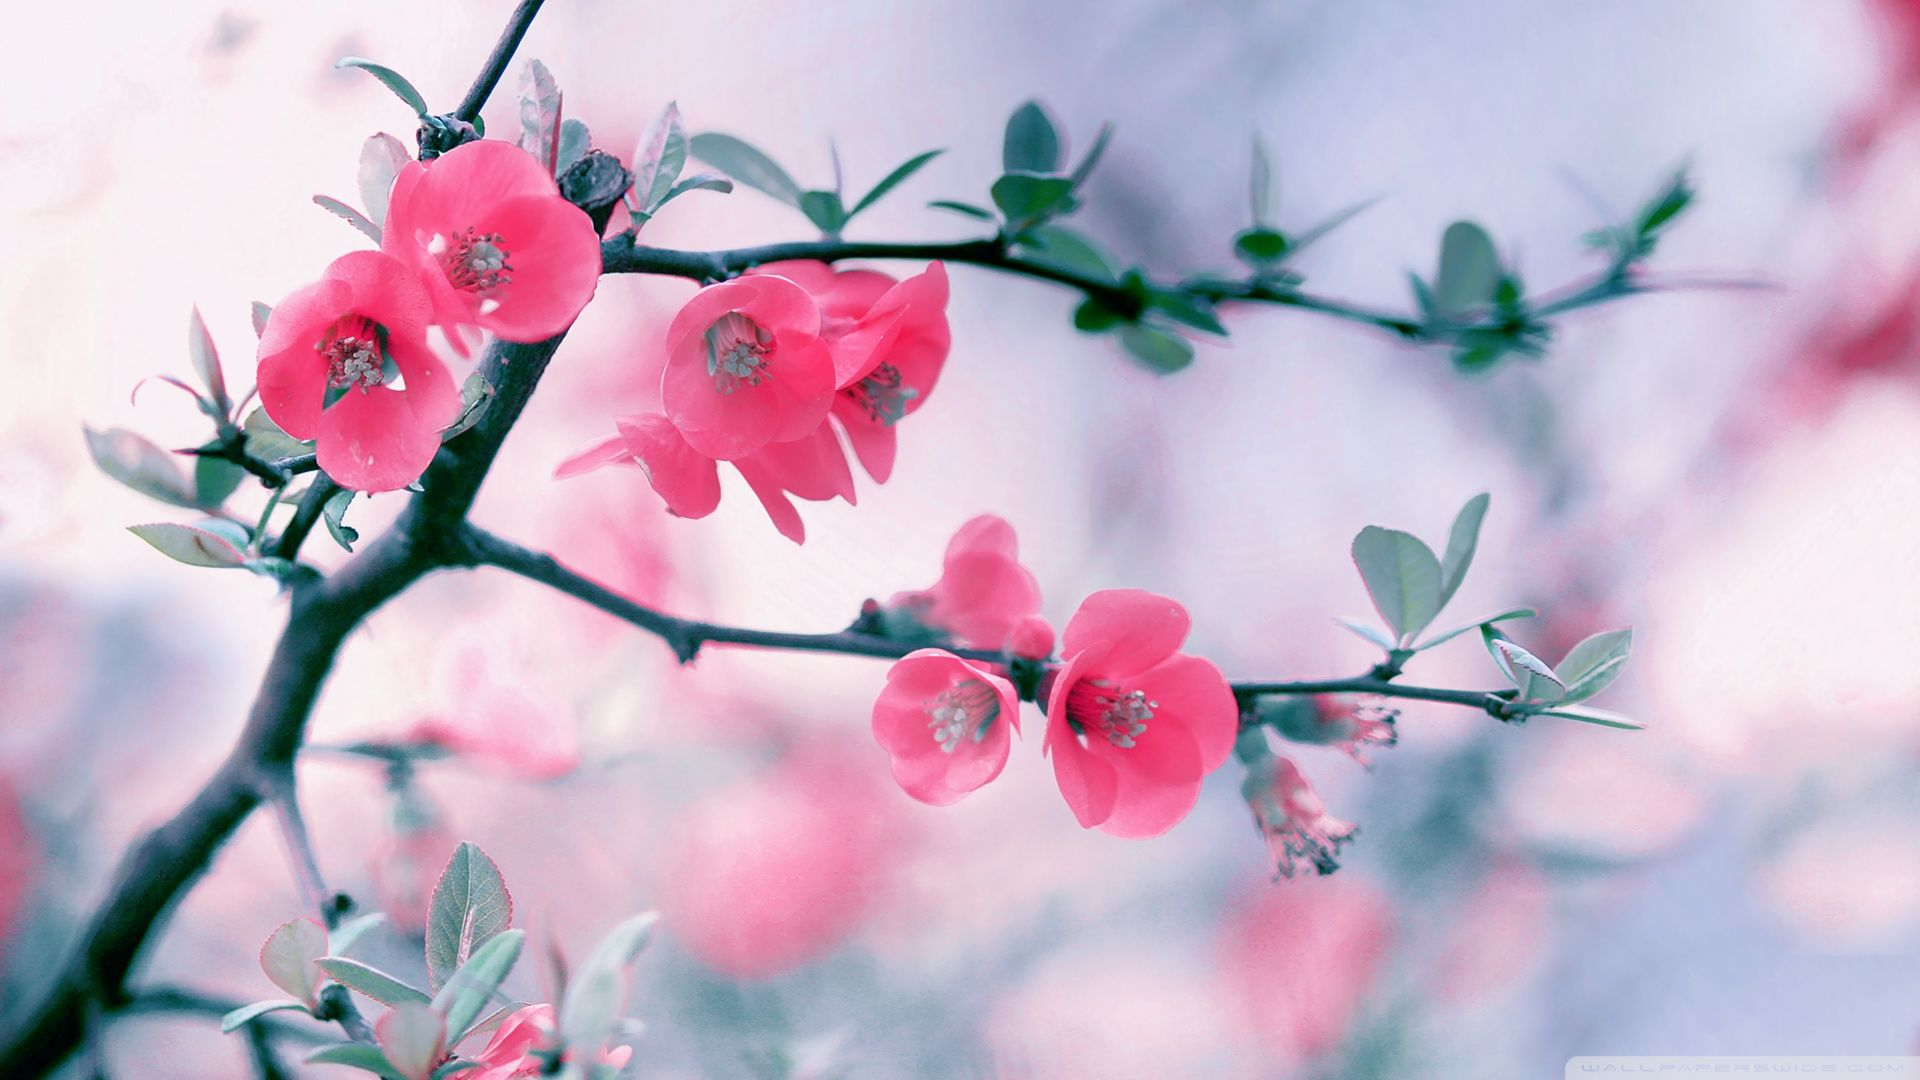 Download Pink Flower, spring, blossom, flowers, 1920x1080 ...